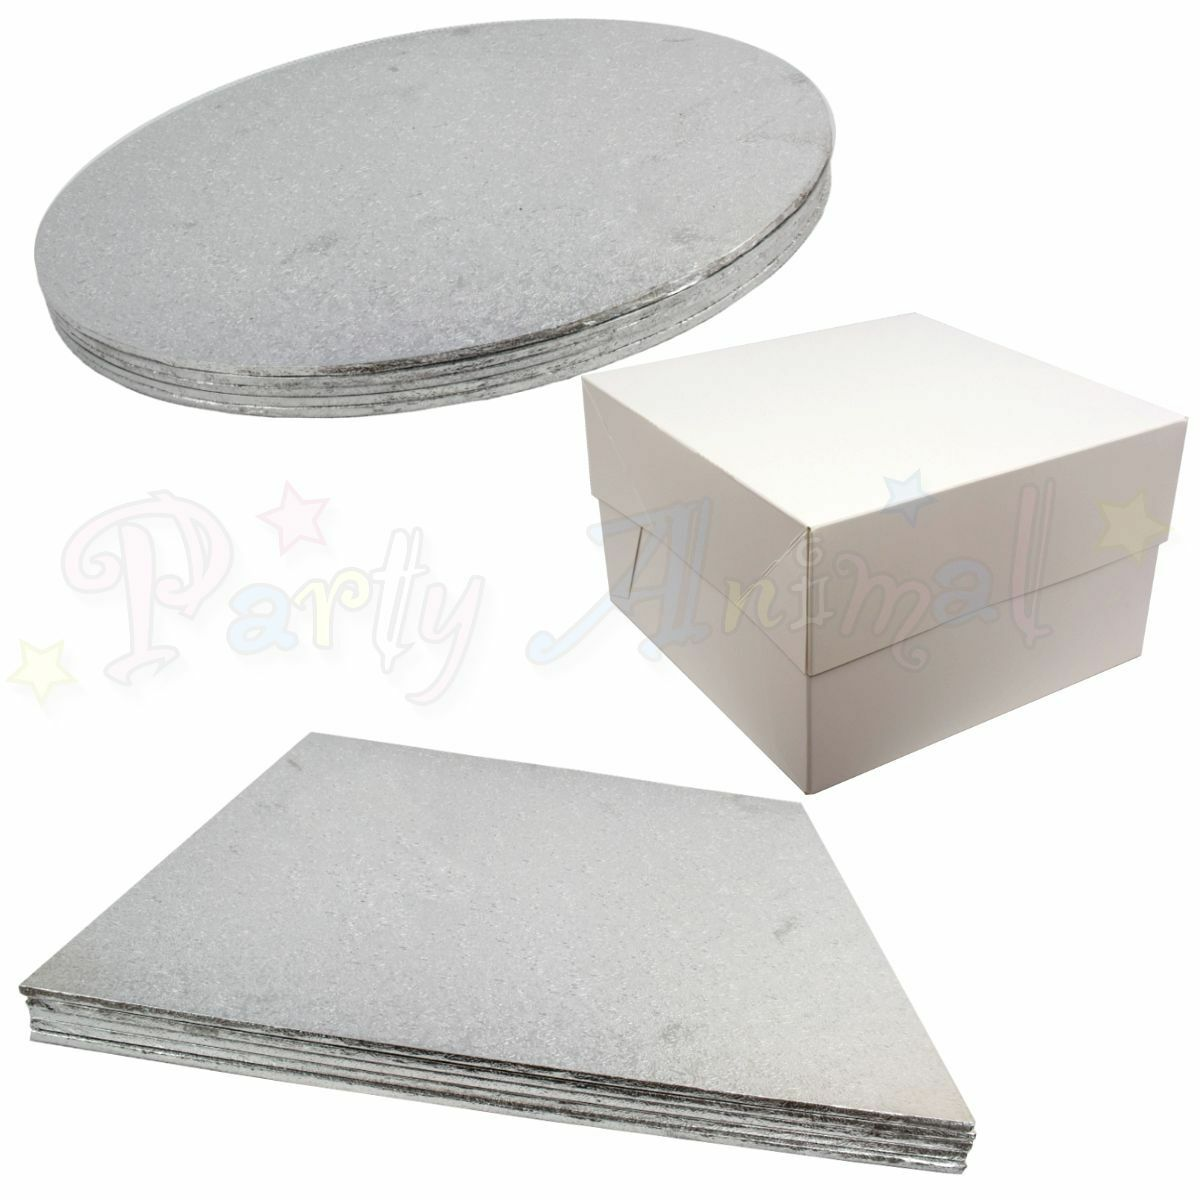 Pack of 5 - Hardboard Cake Boards and White Boxes - Quality Wedding & Sugarcraft